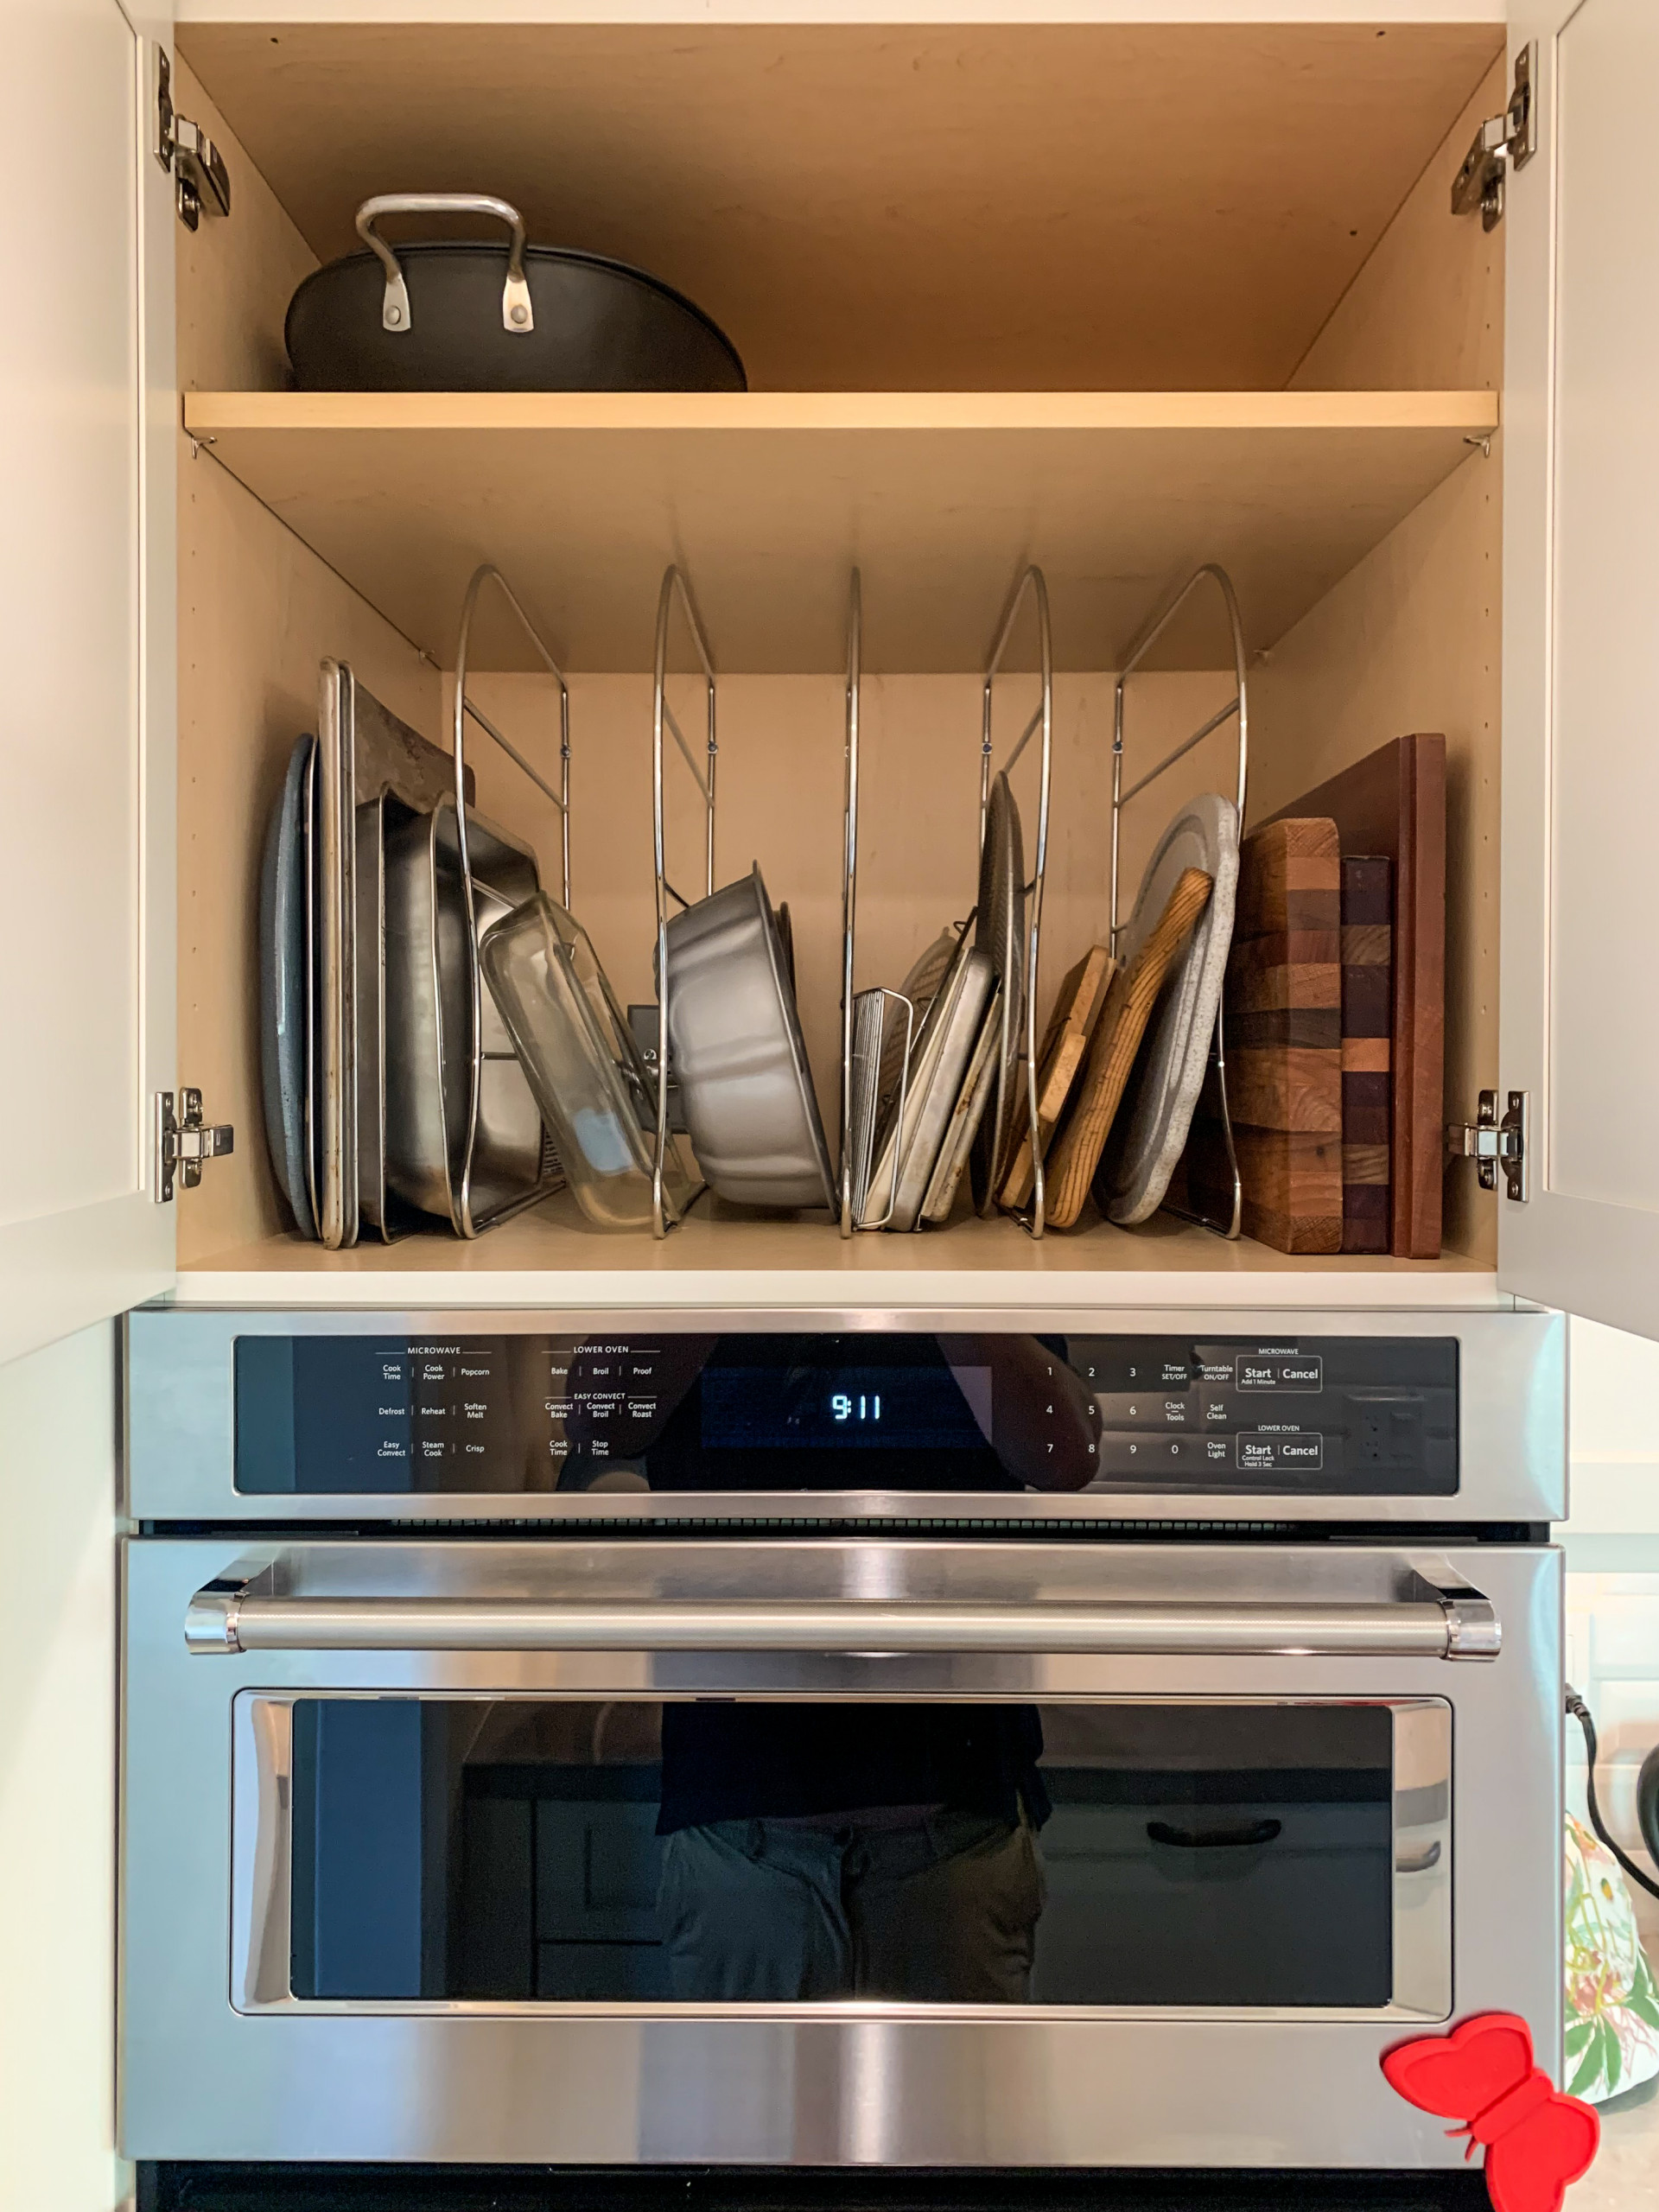 Kitchen Remodel with Peninsula Cooktop